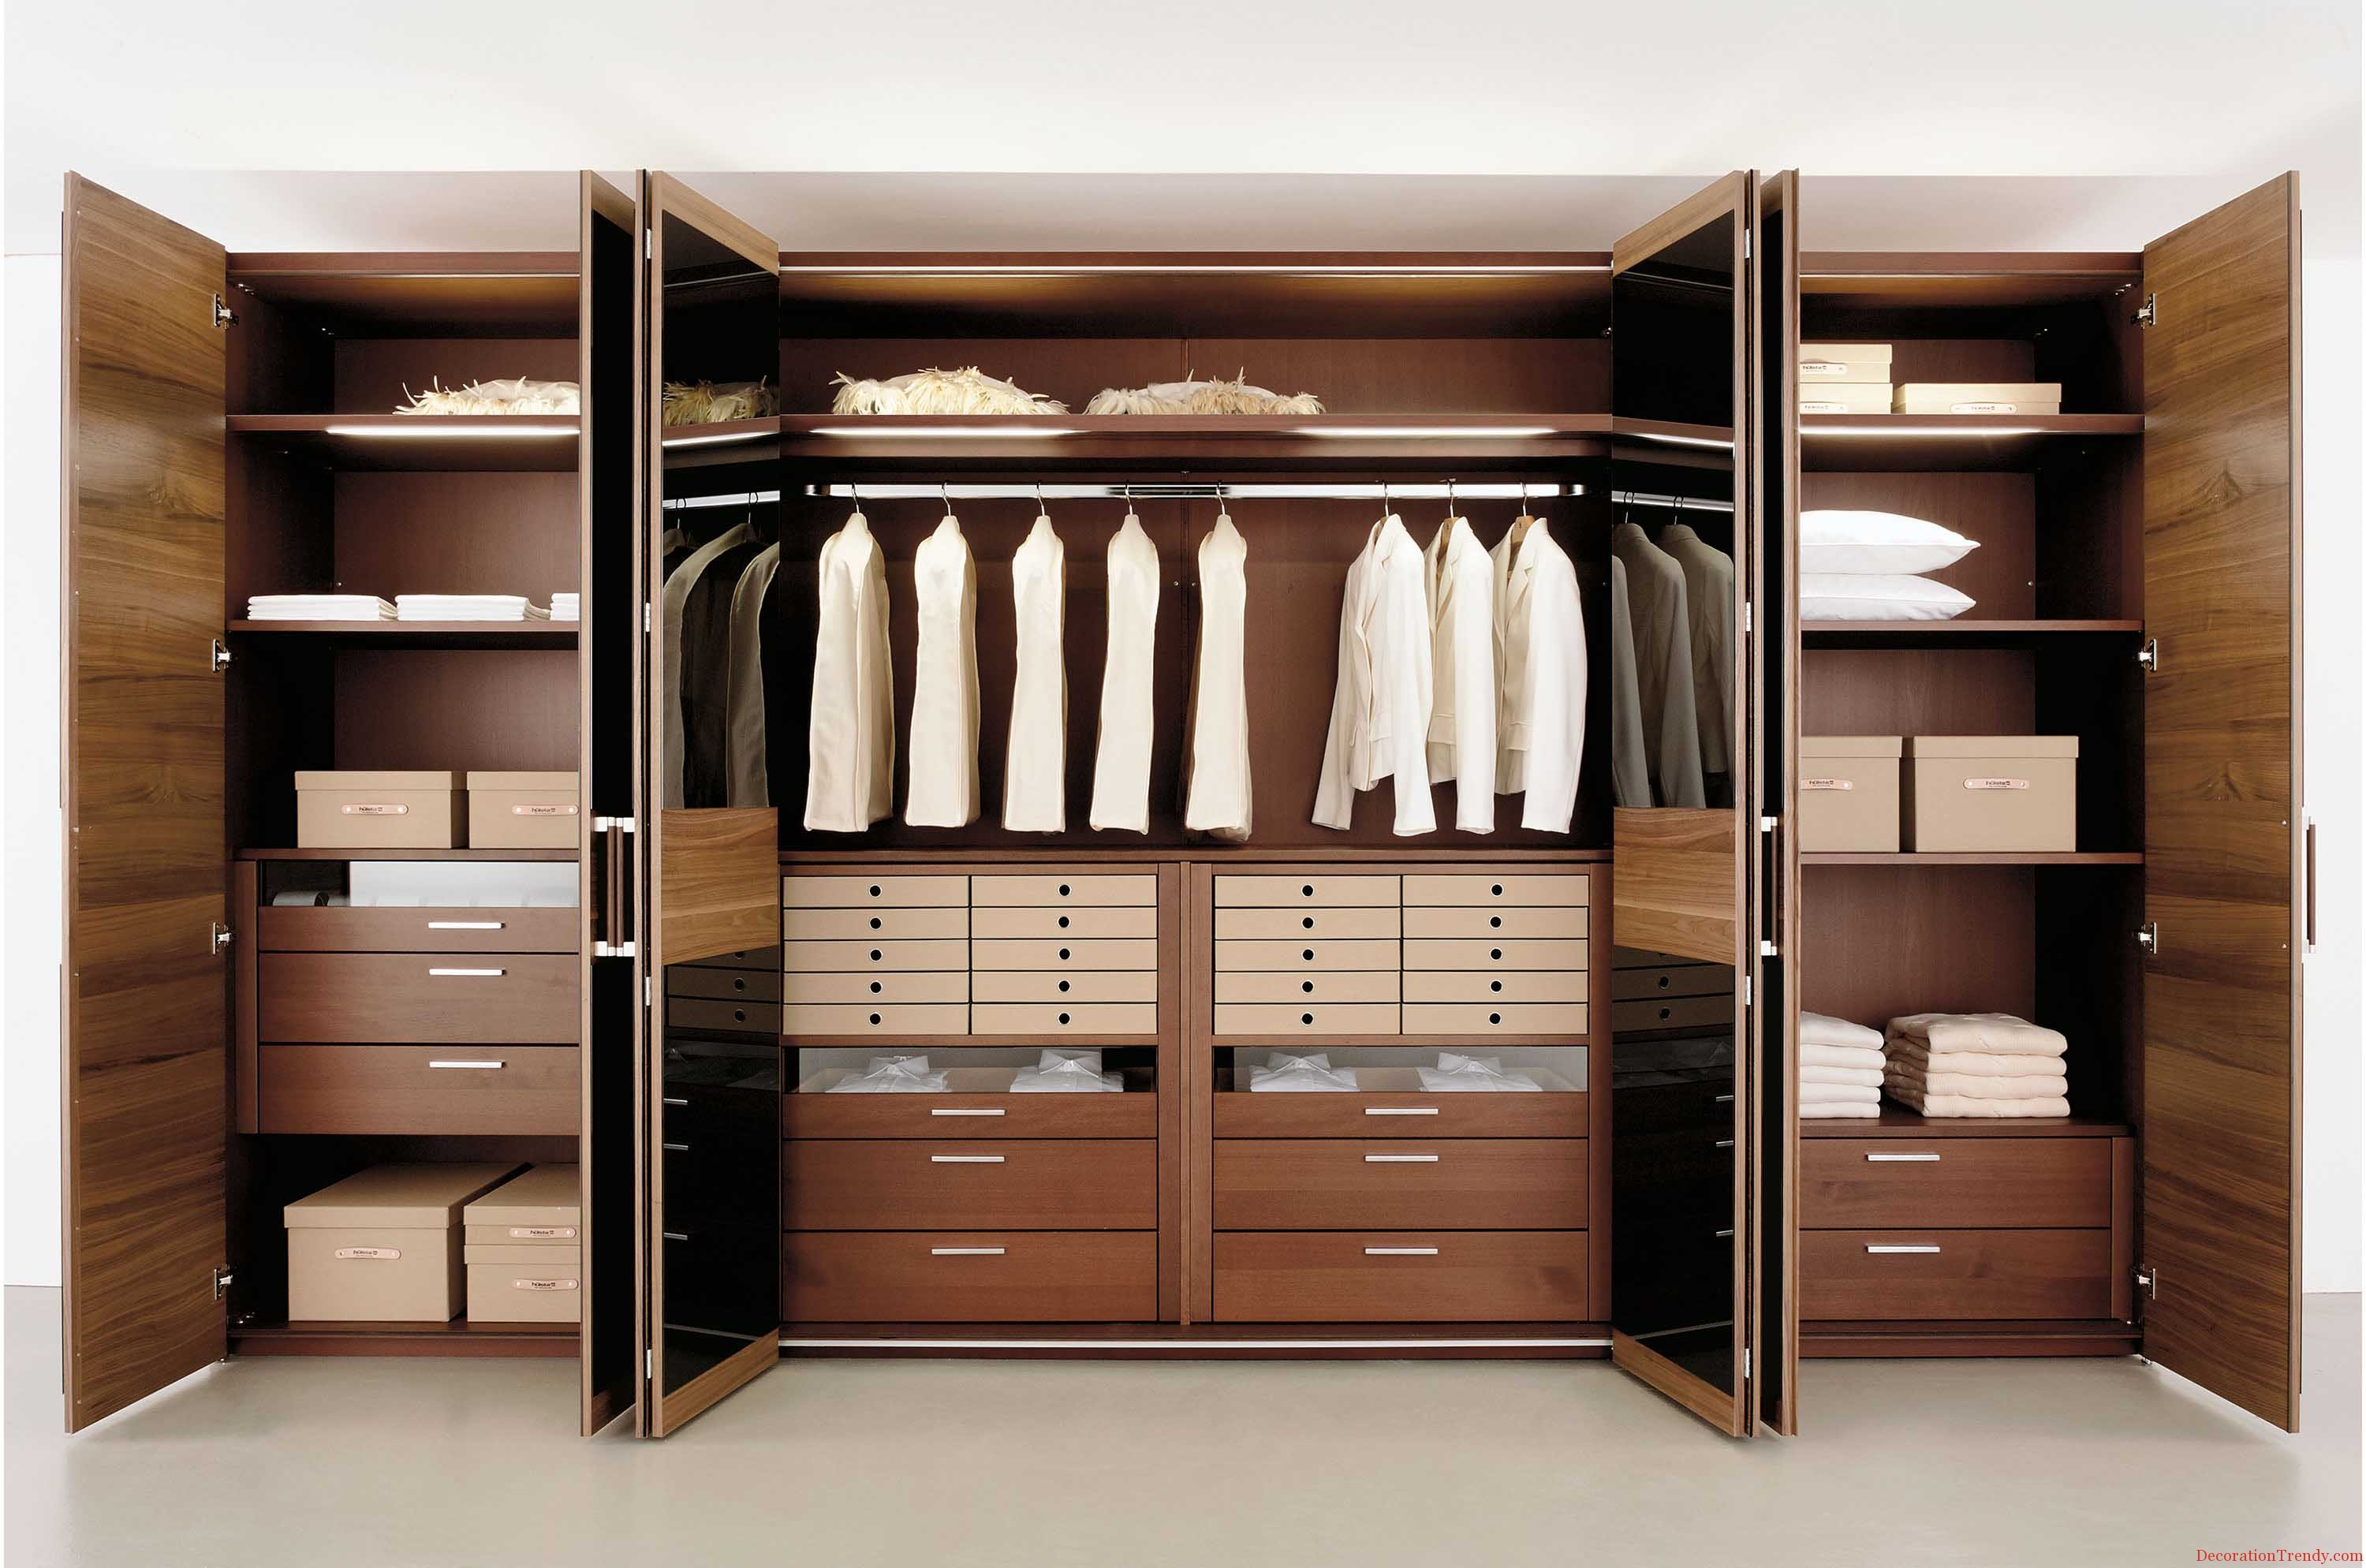 wardrobe-wardrobe-2013-wardrobe-models-wardrobe-decoration-the-most-beautiful-wardrobes-11